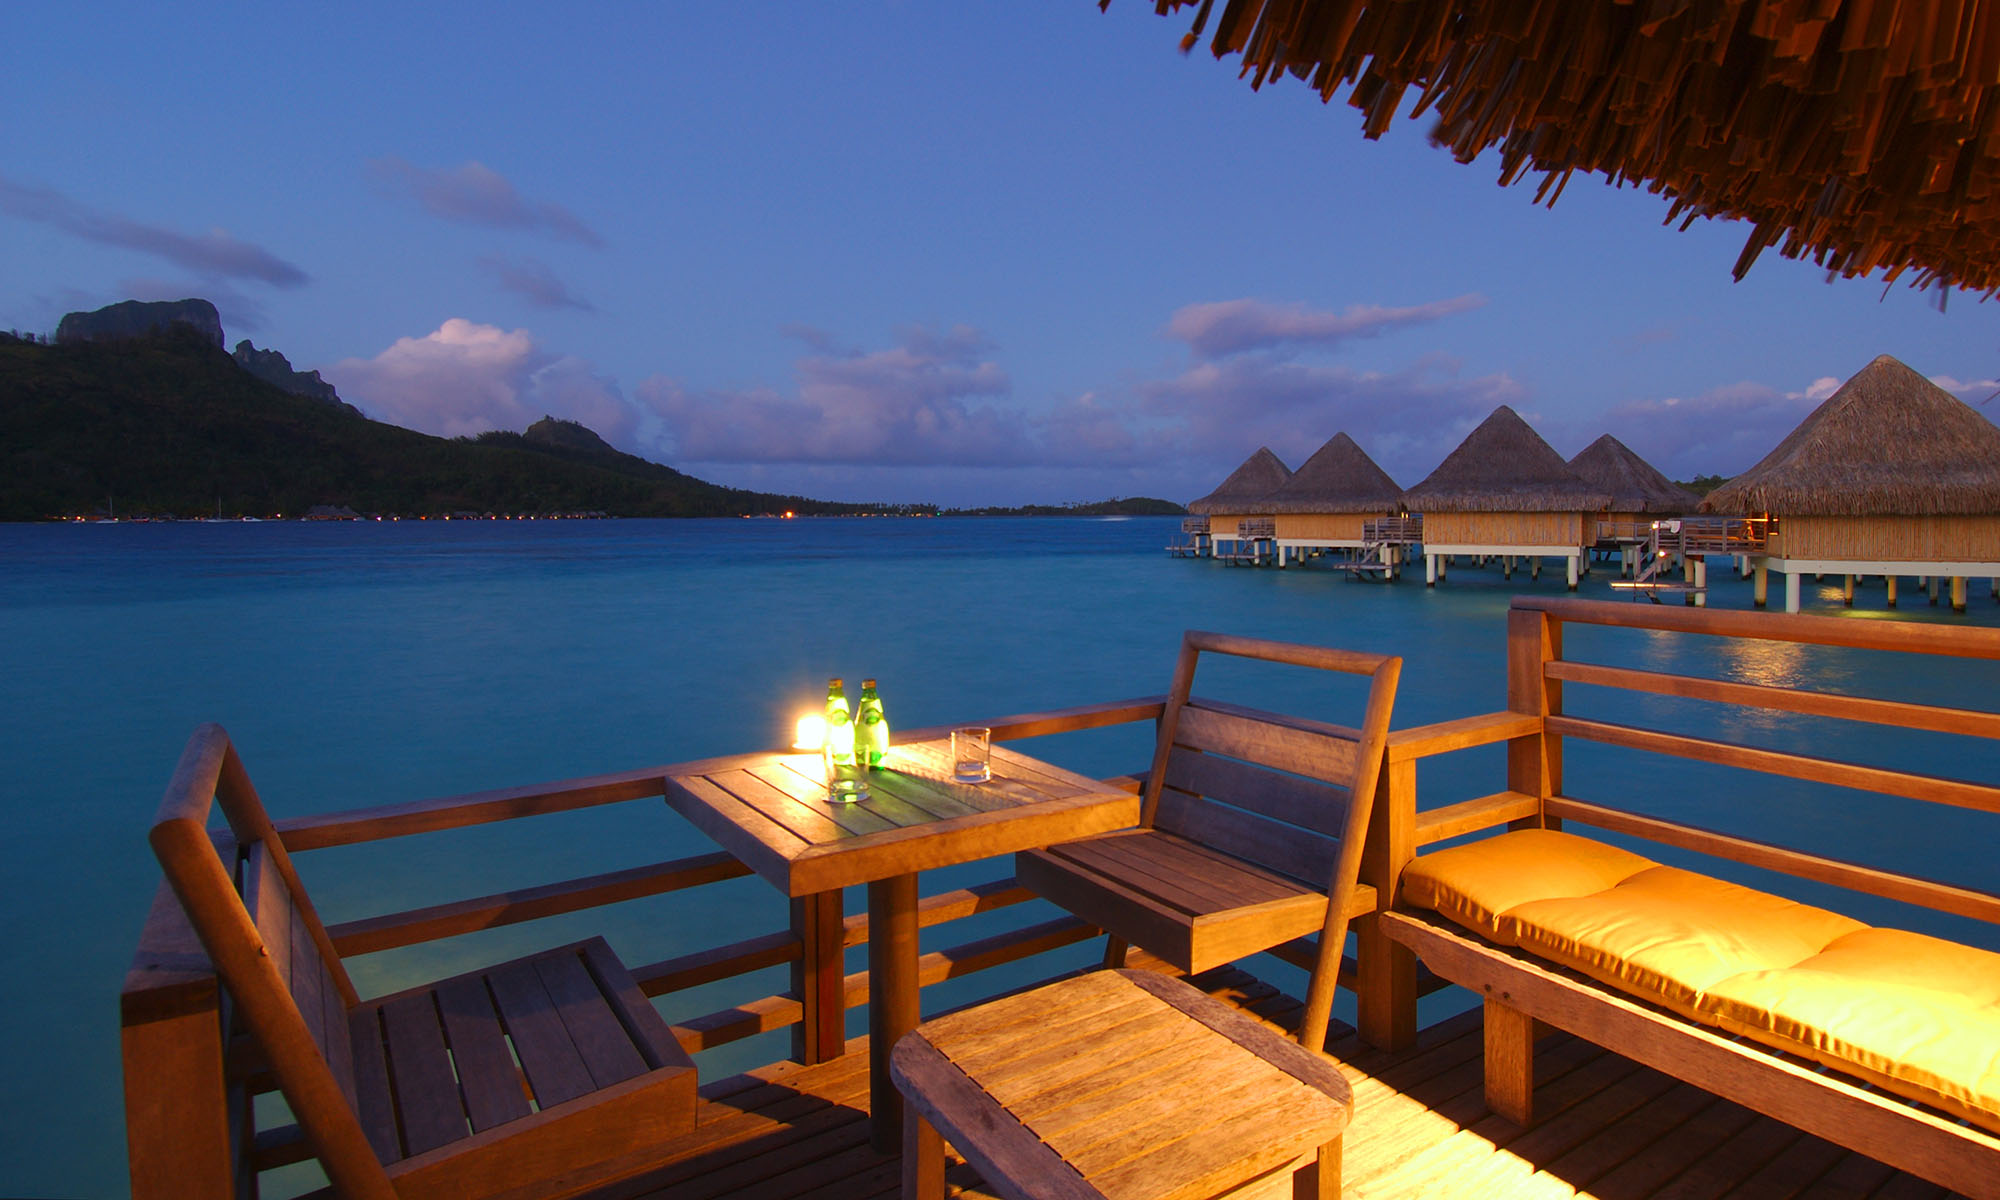 InterContinental Bora Bora Le Moana Resort, Overwater Bungalow Deck